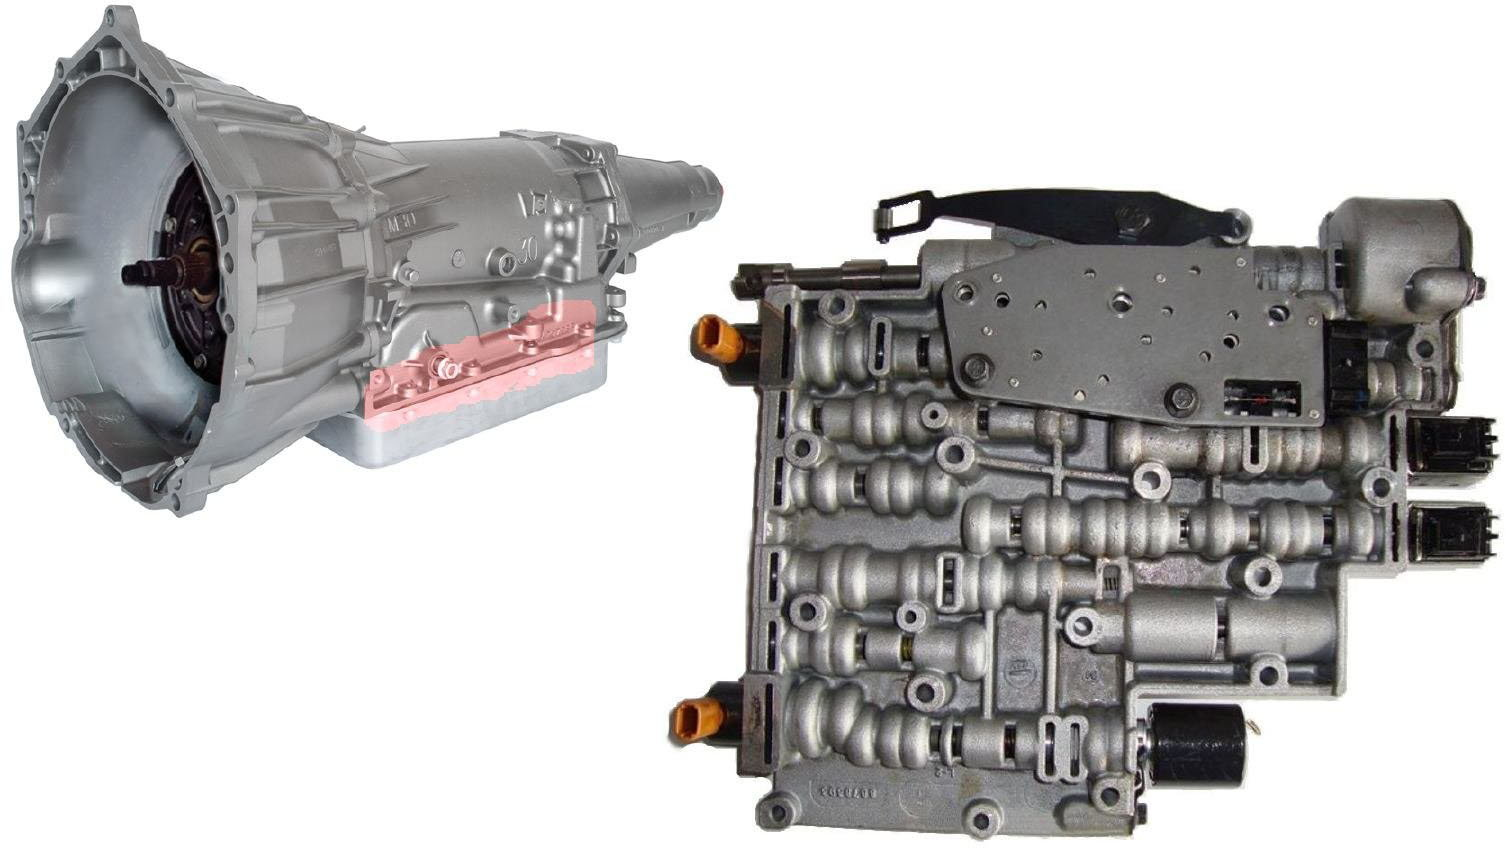 All Chevy chevy 1500 transmission : Chevrolet Silverado 2007-2013 GMT900 Transmission Problems and ...